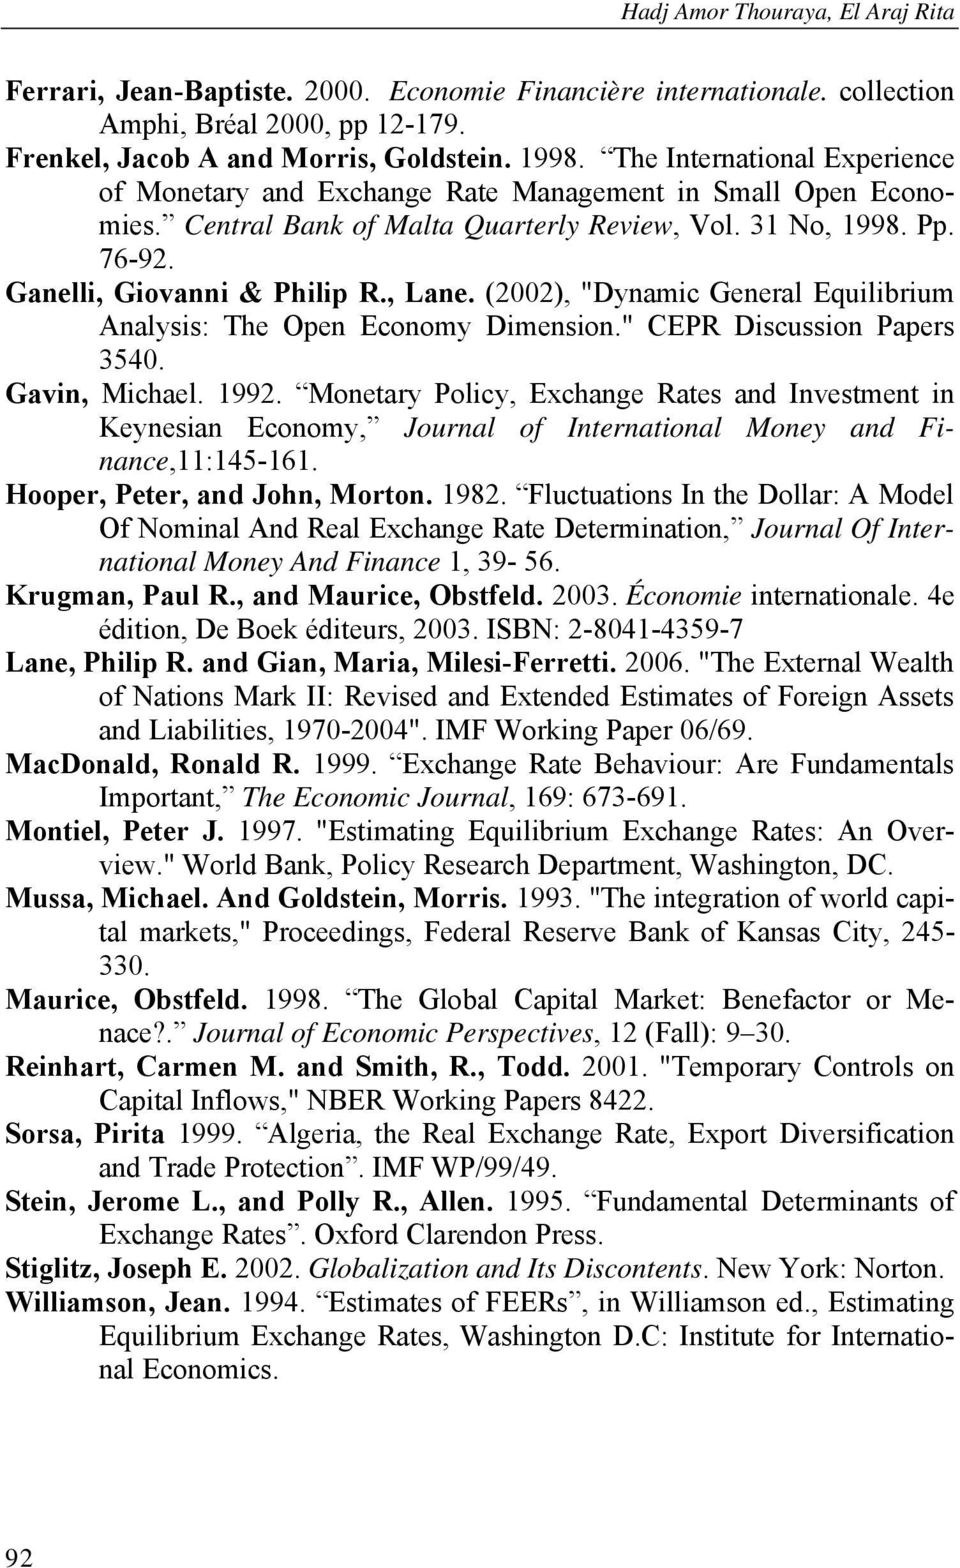 "(2002), ""Dynamic General Equilibrium Analysis: The Open Economy Dimension."" CEPR Discussion Papers 3540. Gavin, Michael. 1992."